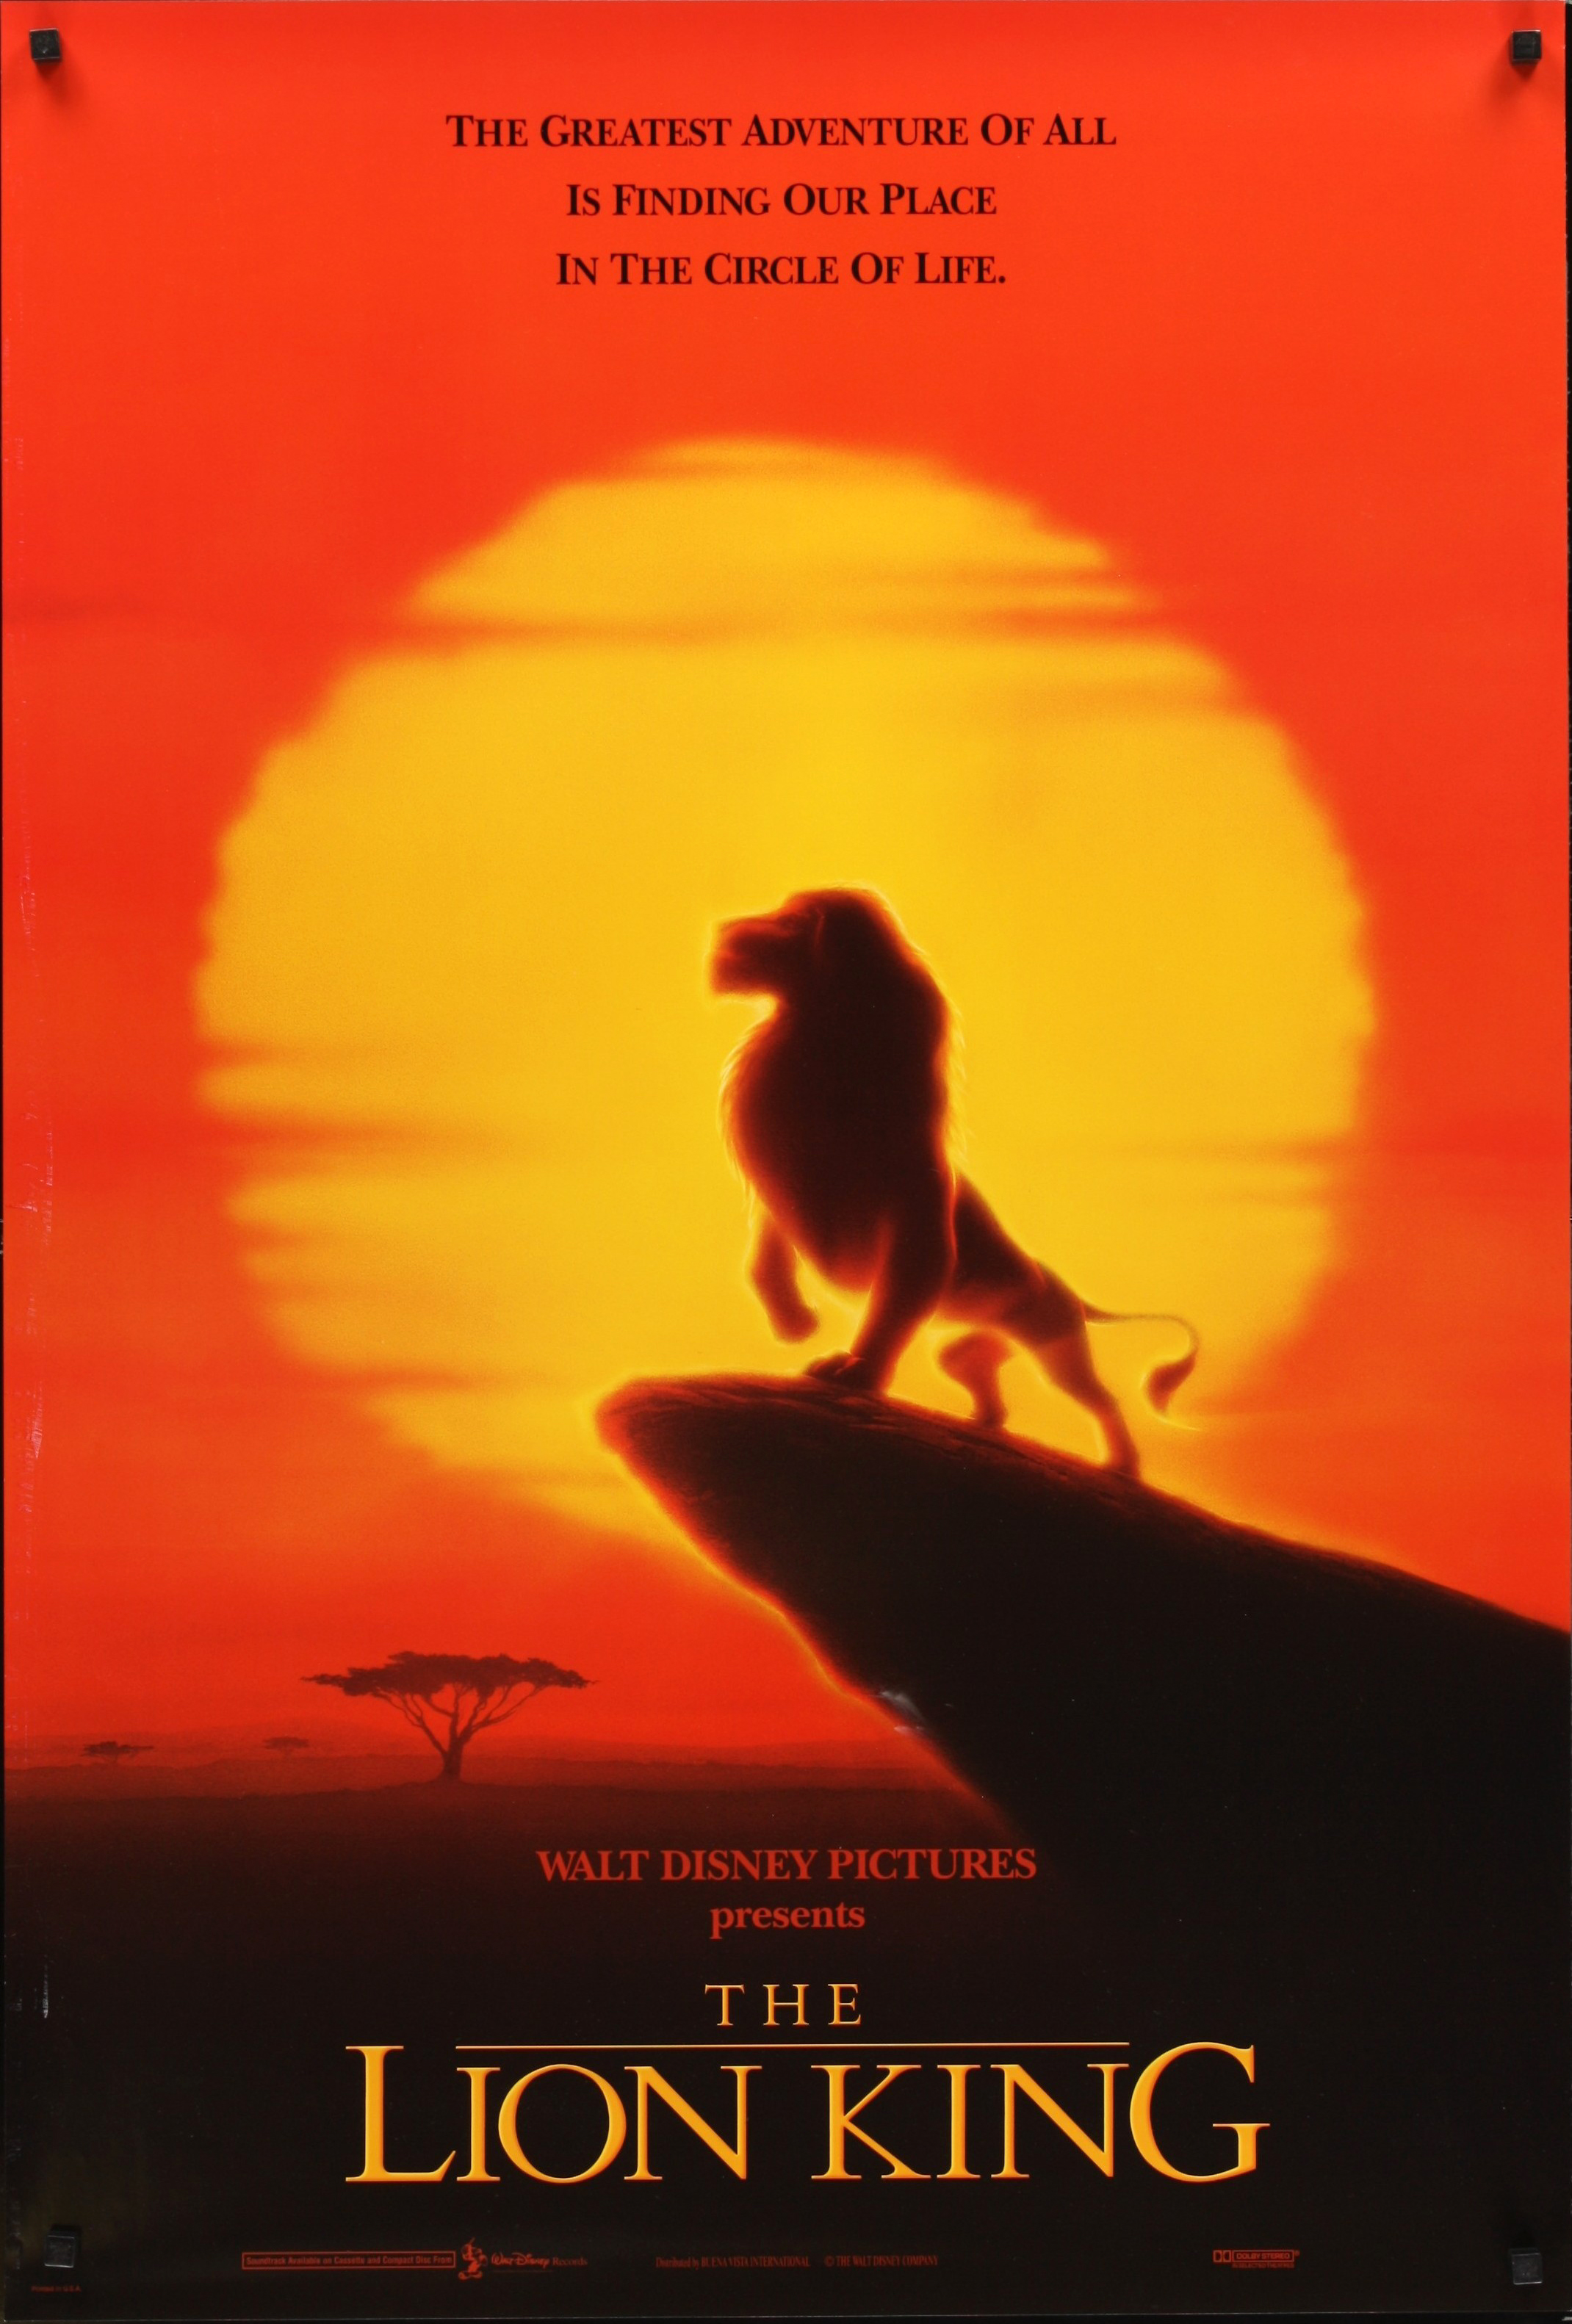 The Lion King  Movie Review  Common Sense Media